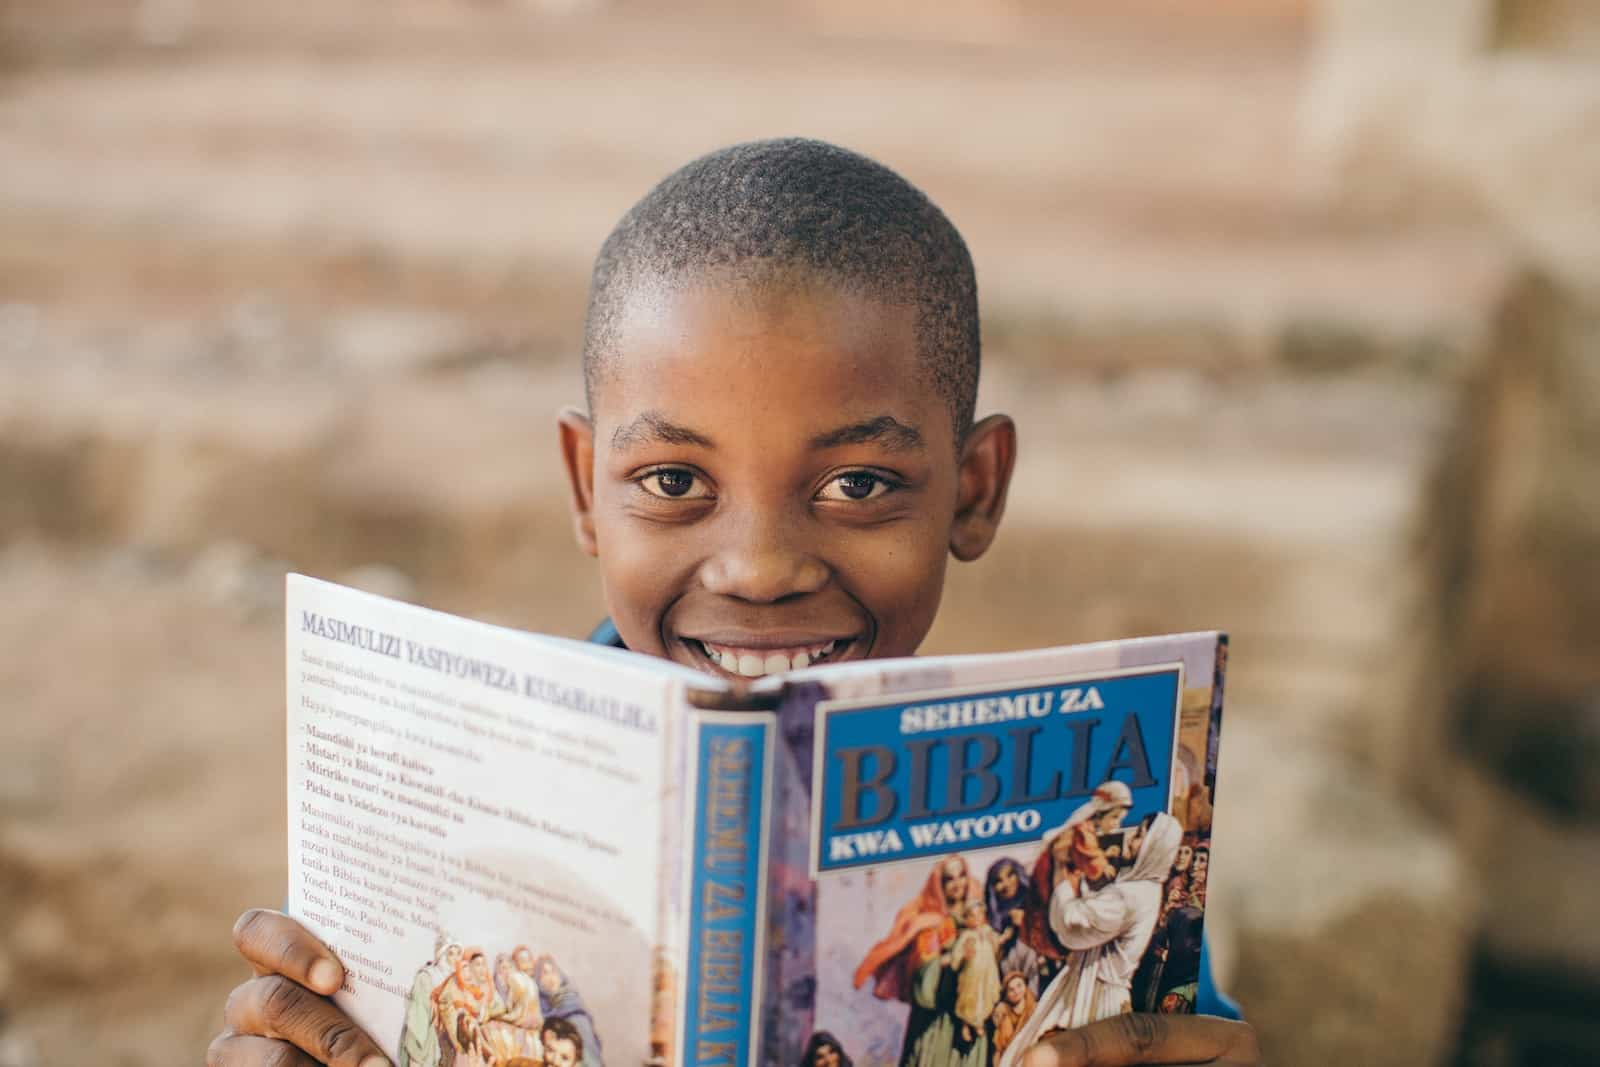 A boy holds an open Bible in front of his face, smiling.